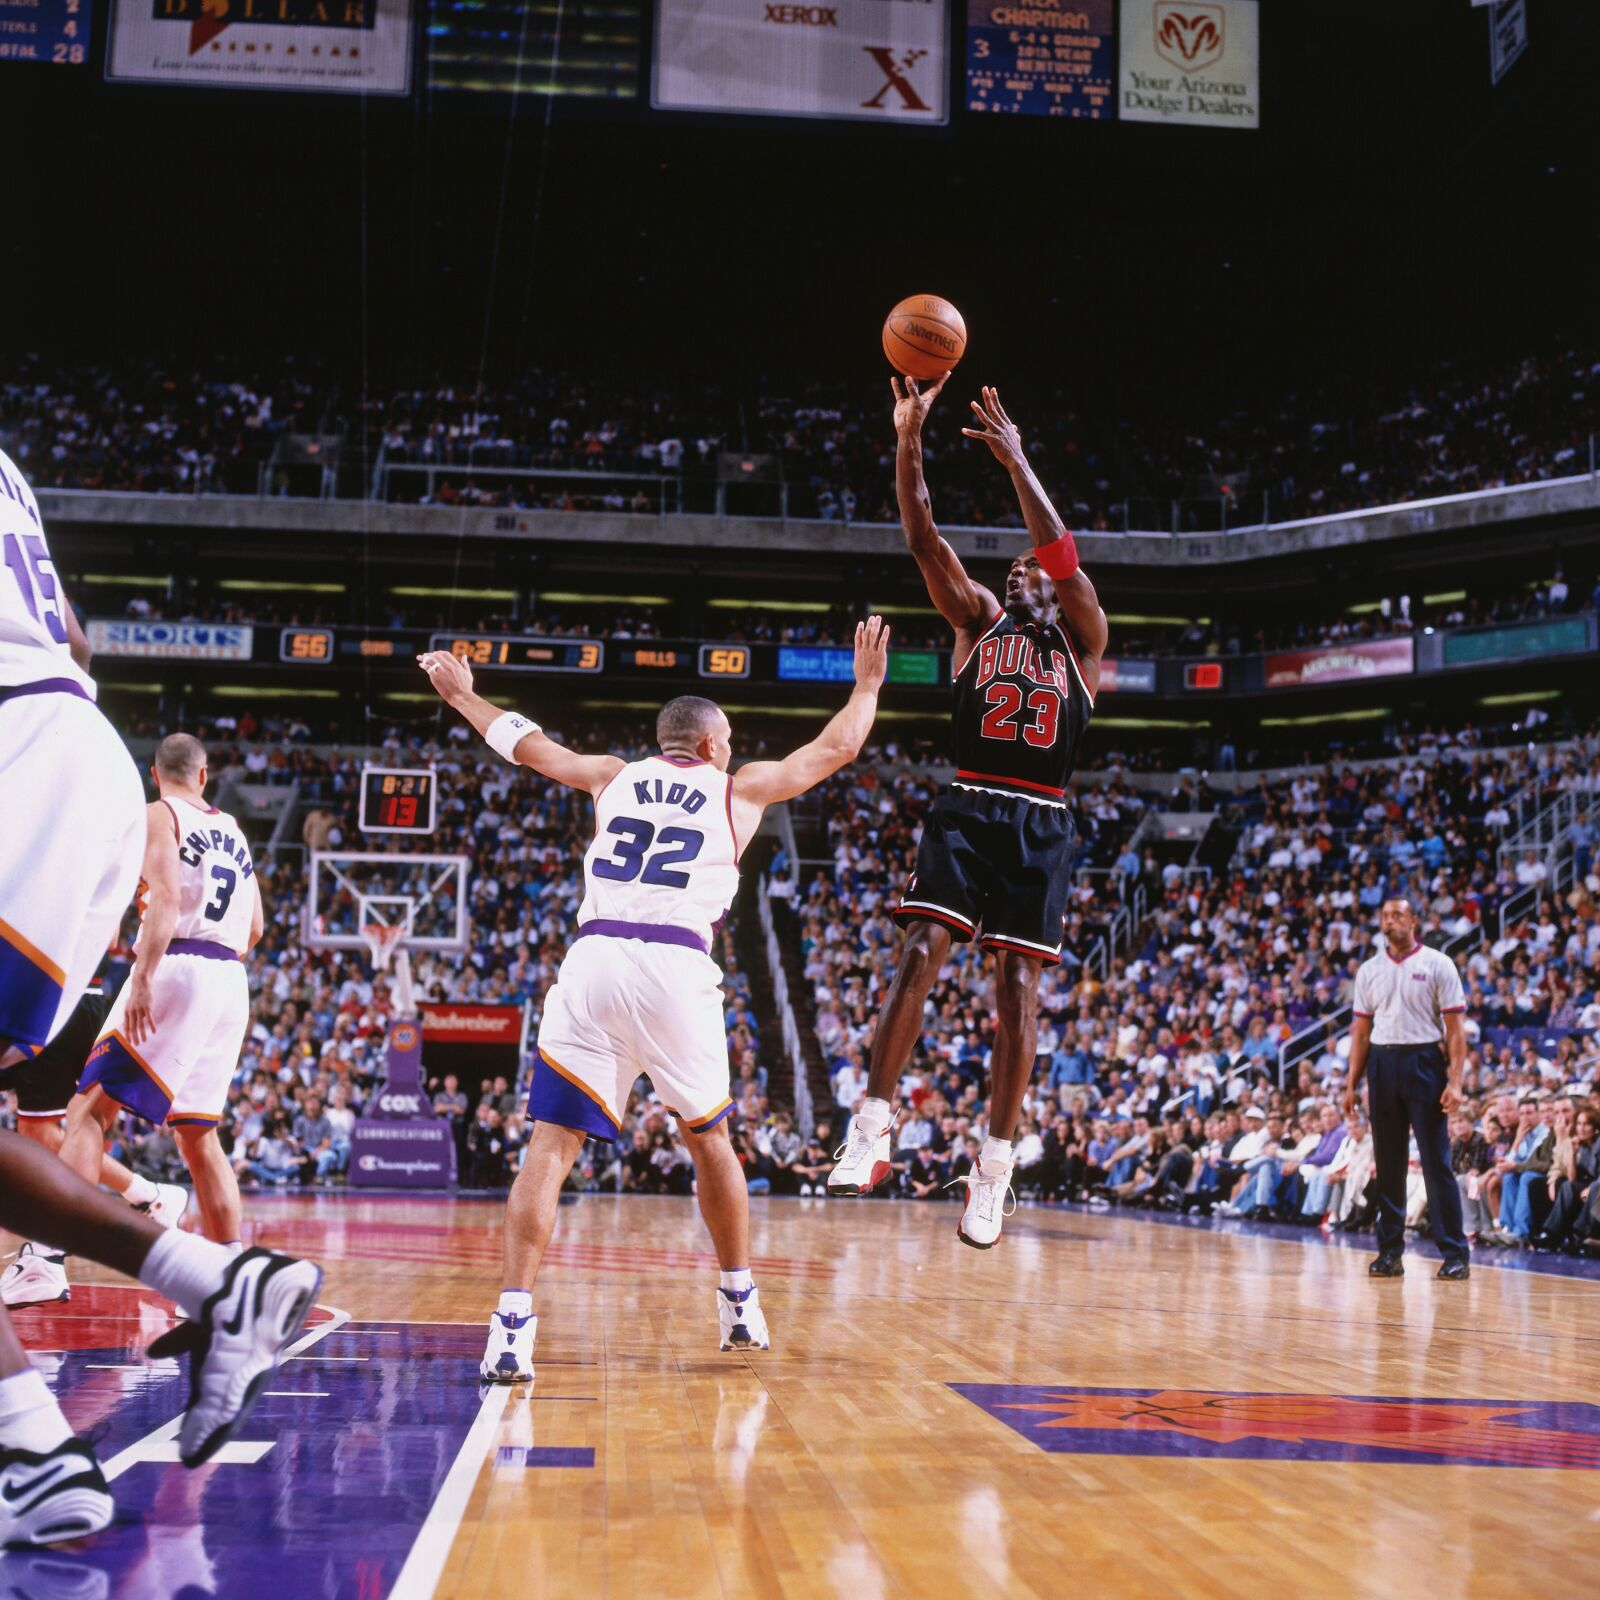 Michael Jordan's last game in Phoenix against the Suns with